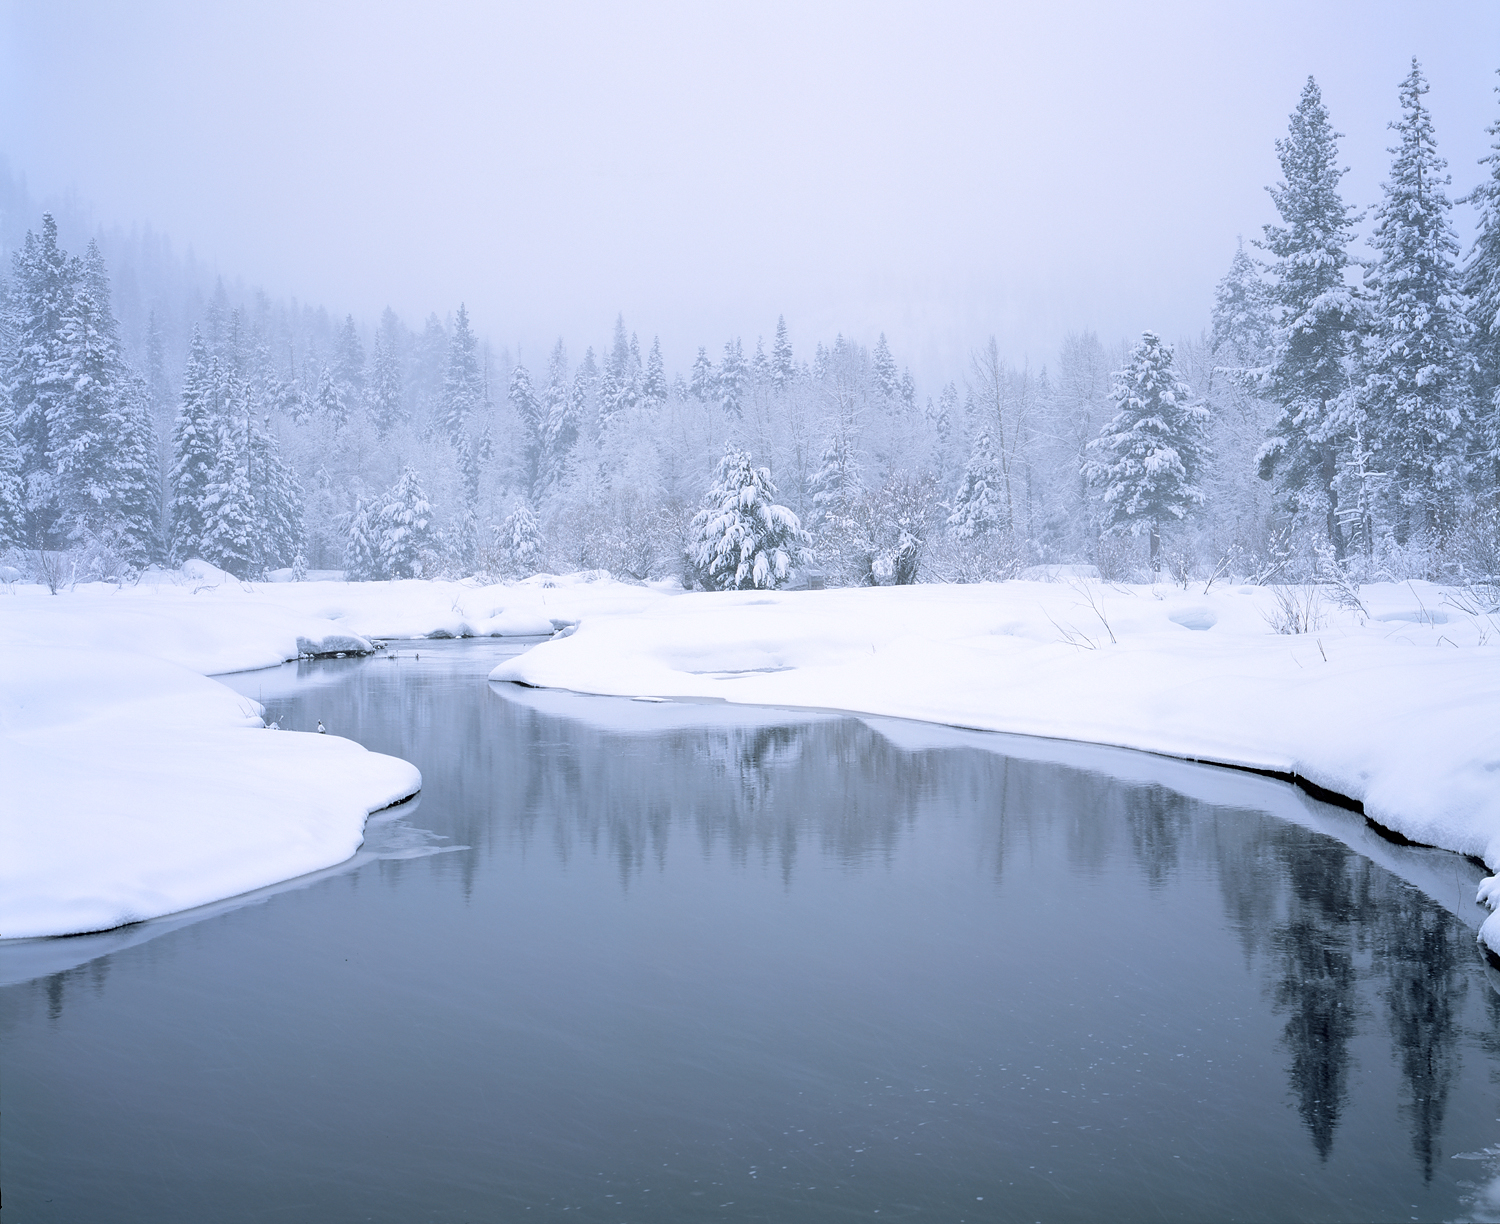 Truckee River, Snowing